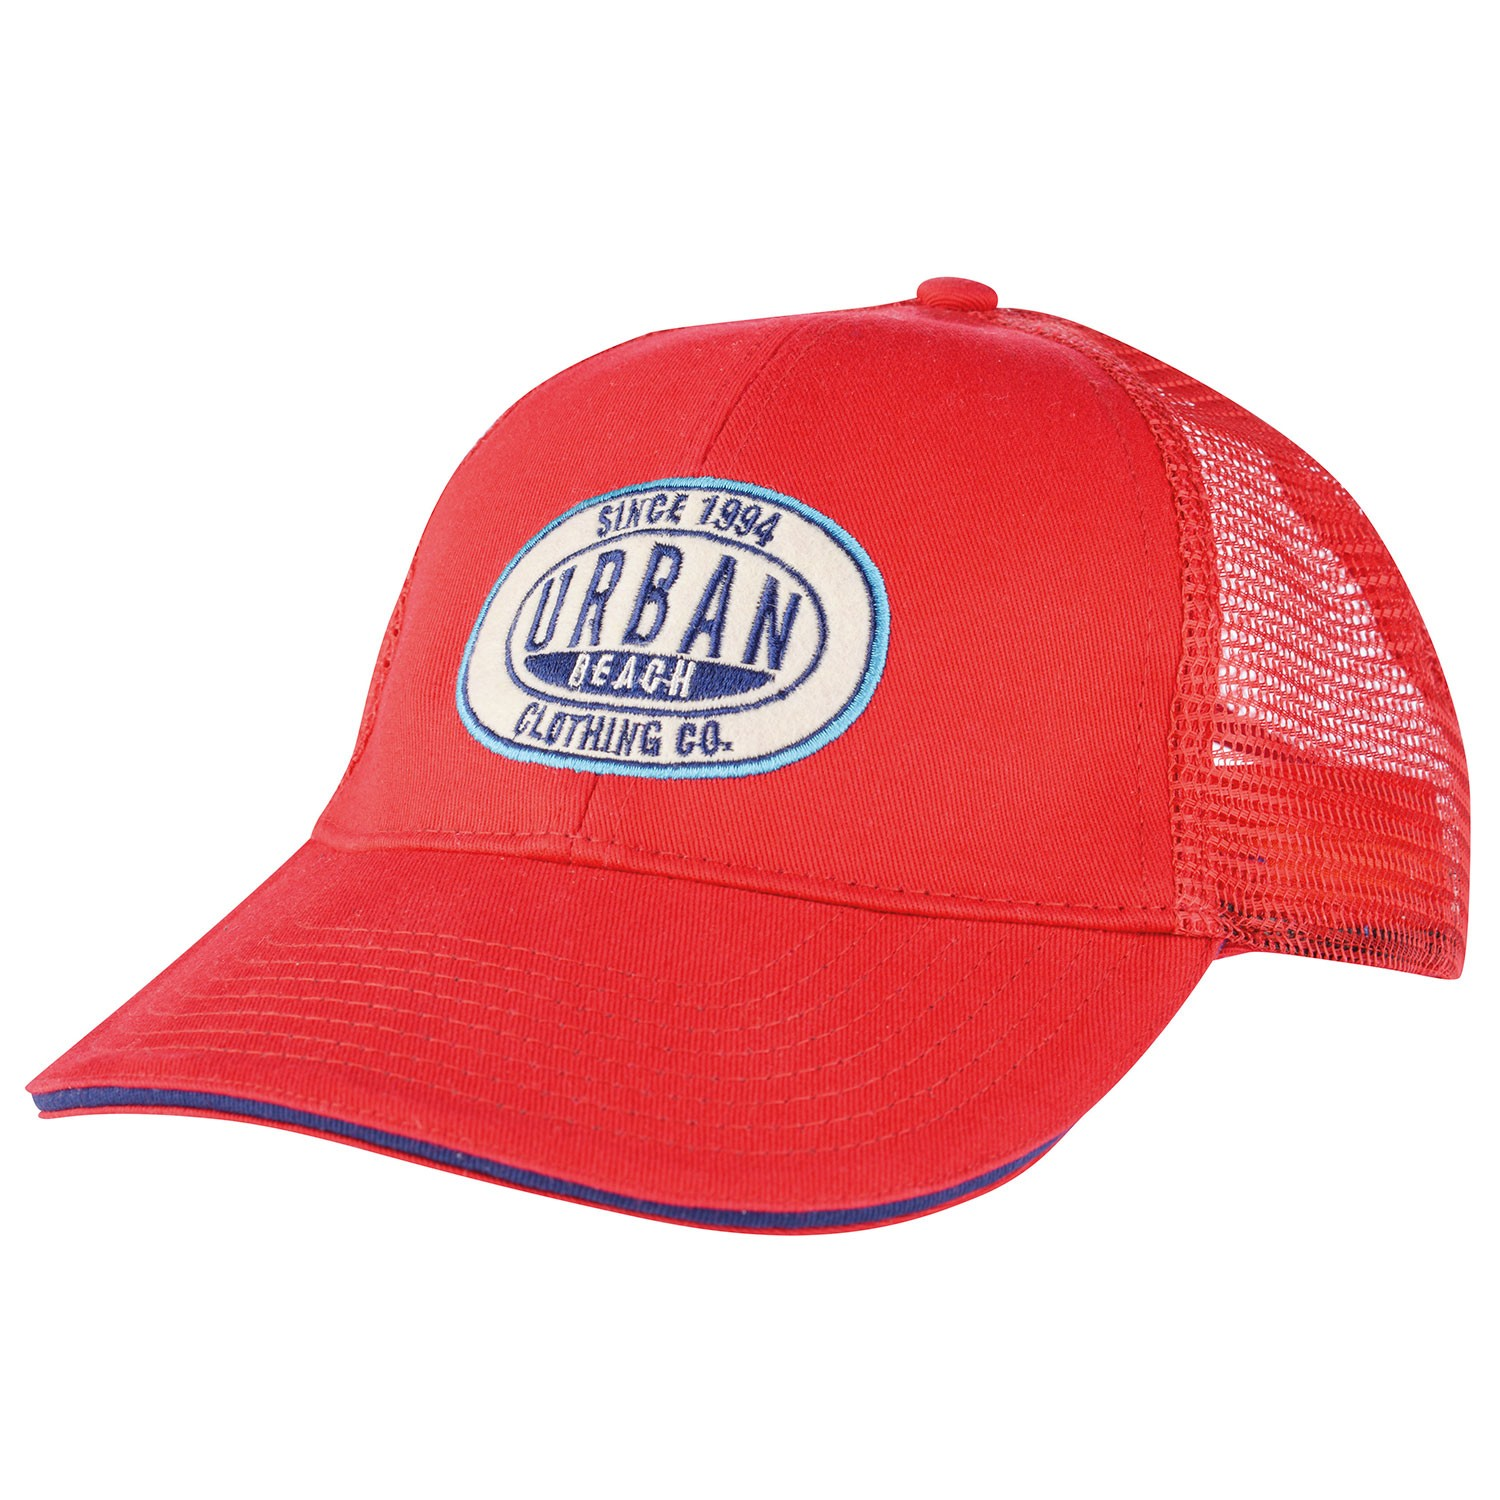 c4cde0b081 Red Trucker Cap Attendant- Free Delivery Over £20 - Urban Beach